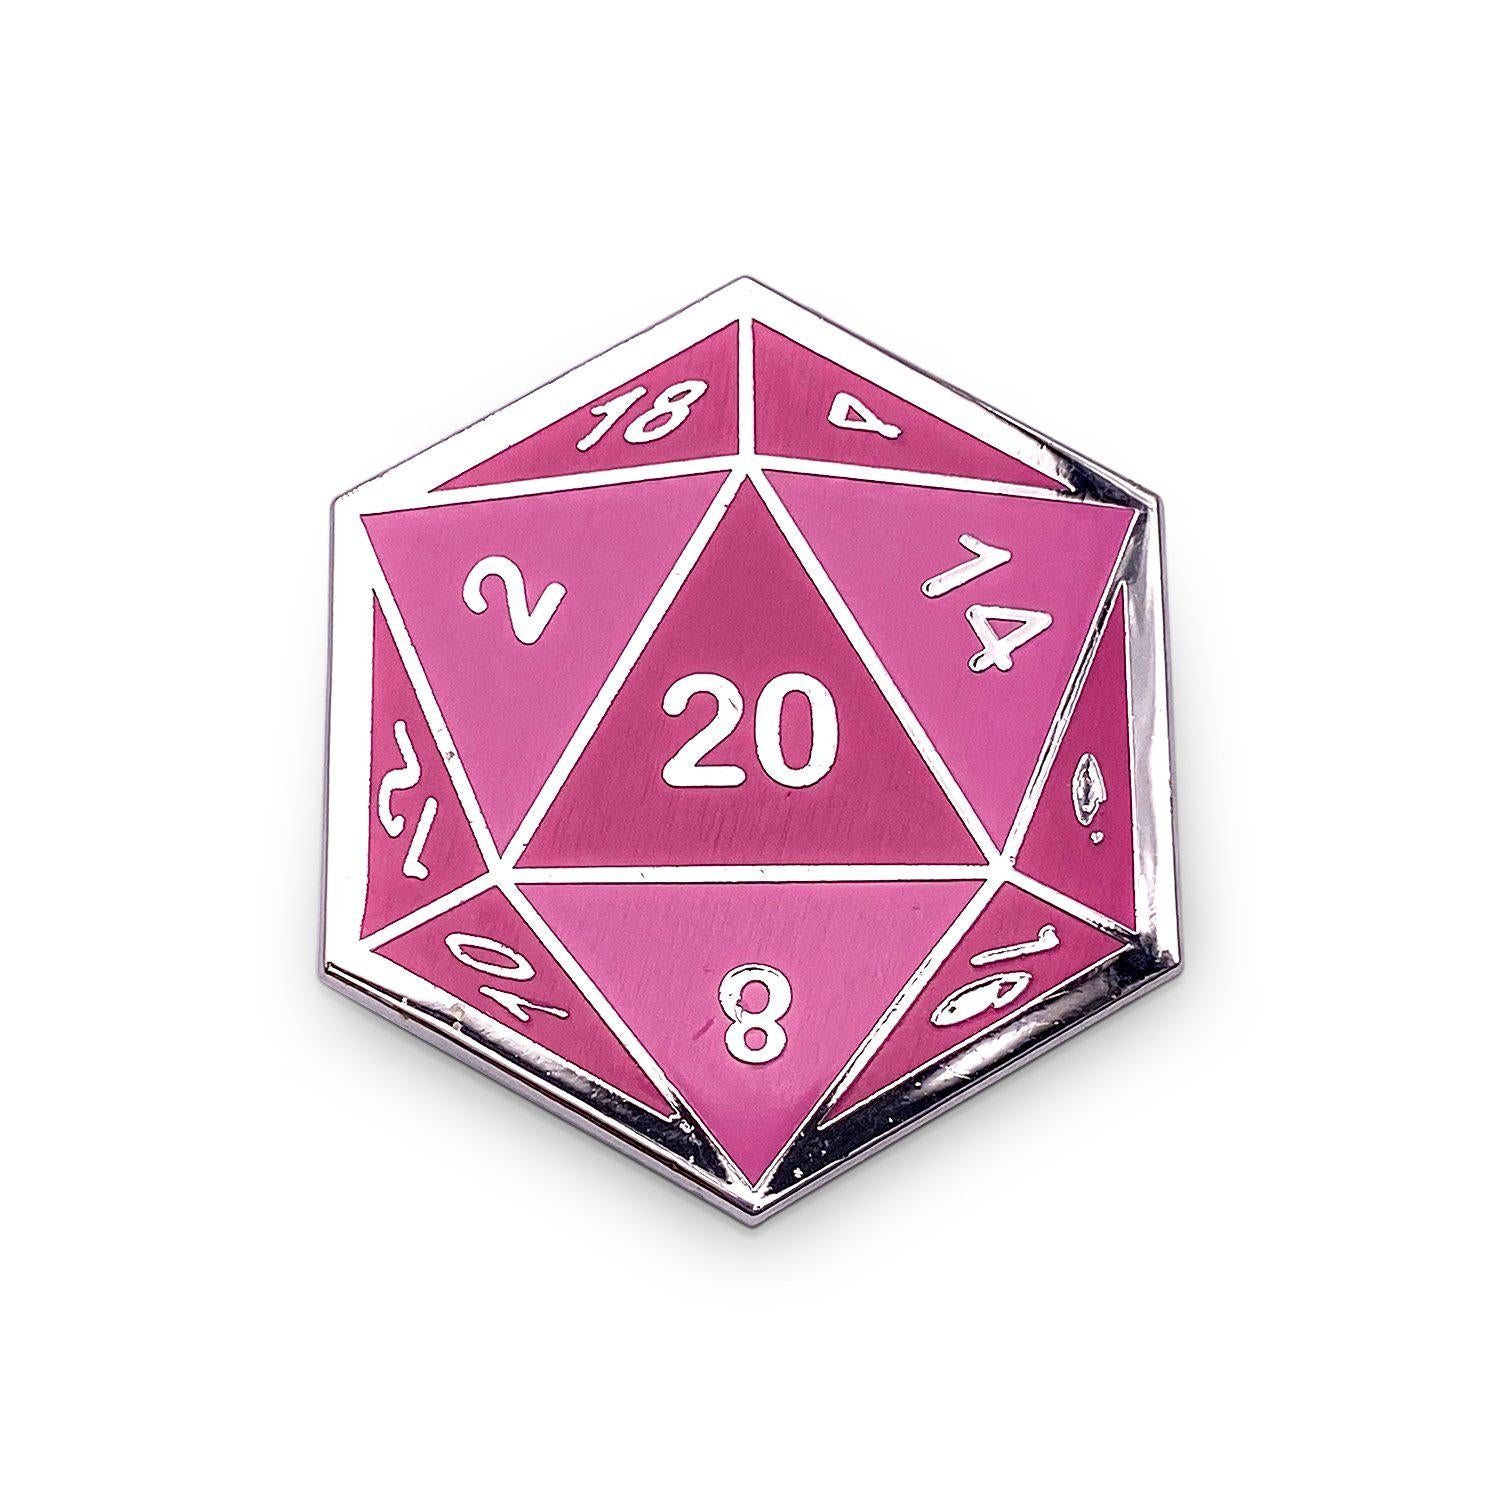 D20 Dice Die - Hard Enamel Adventure Dice Pin Metal by Norse Foundry